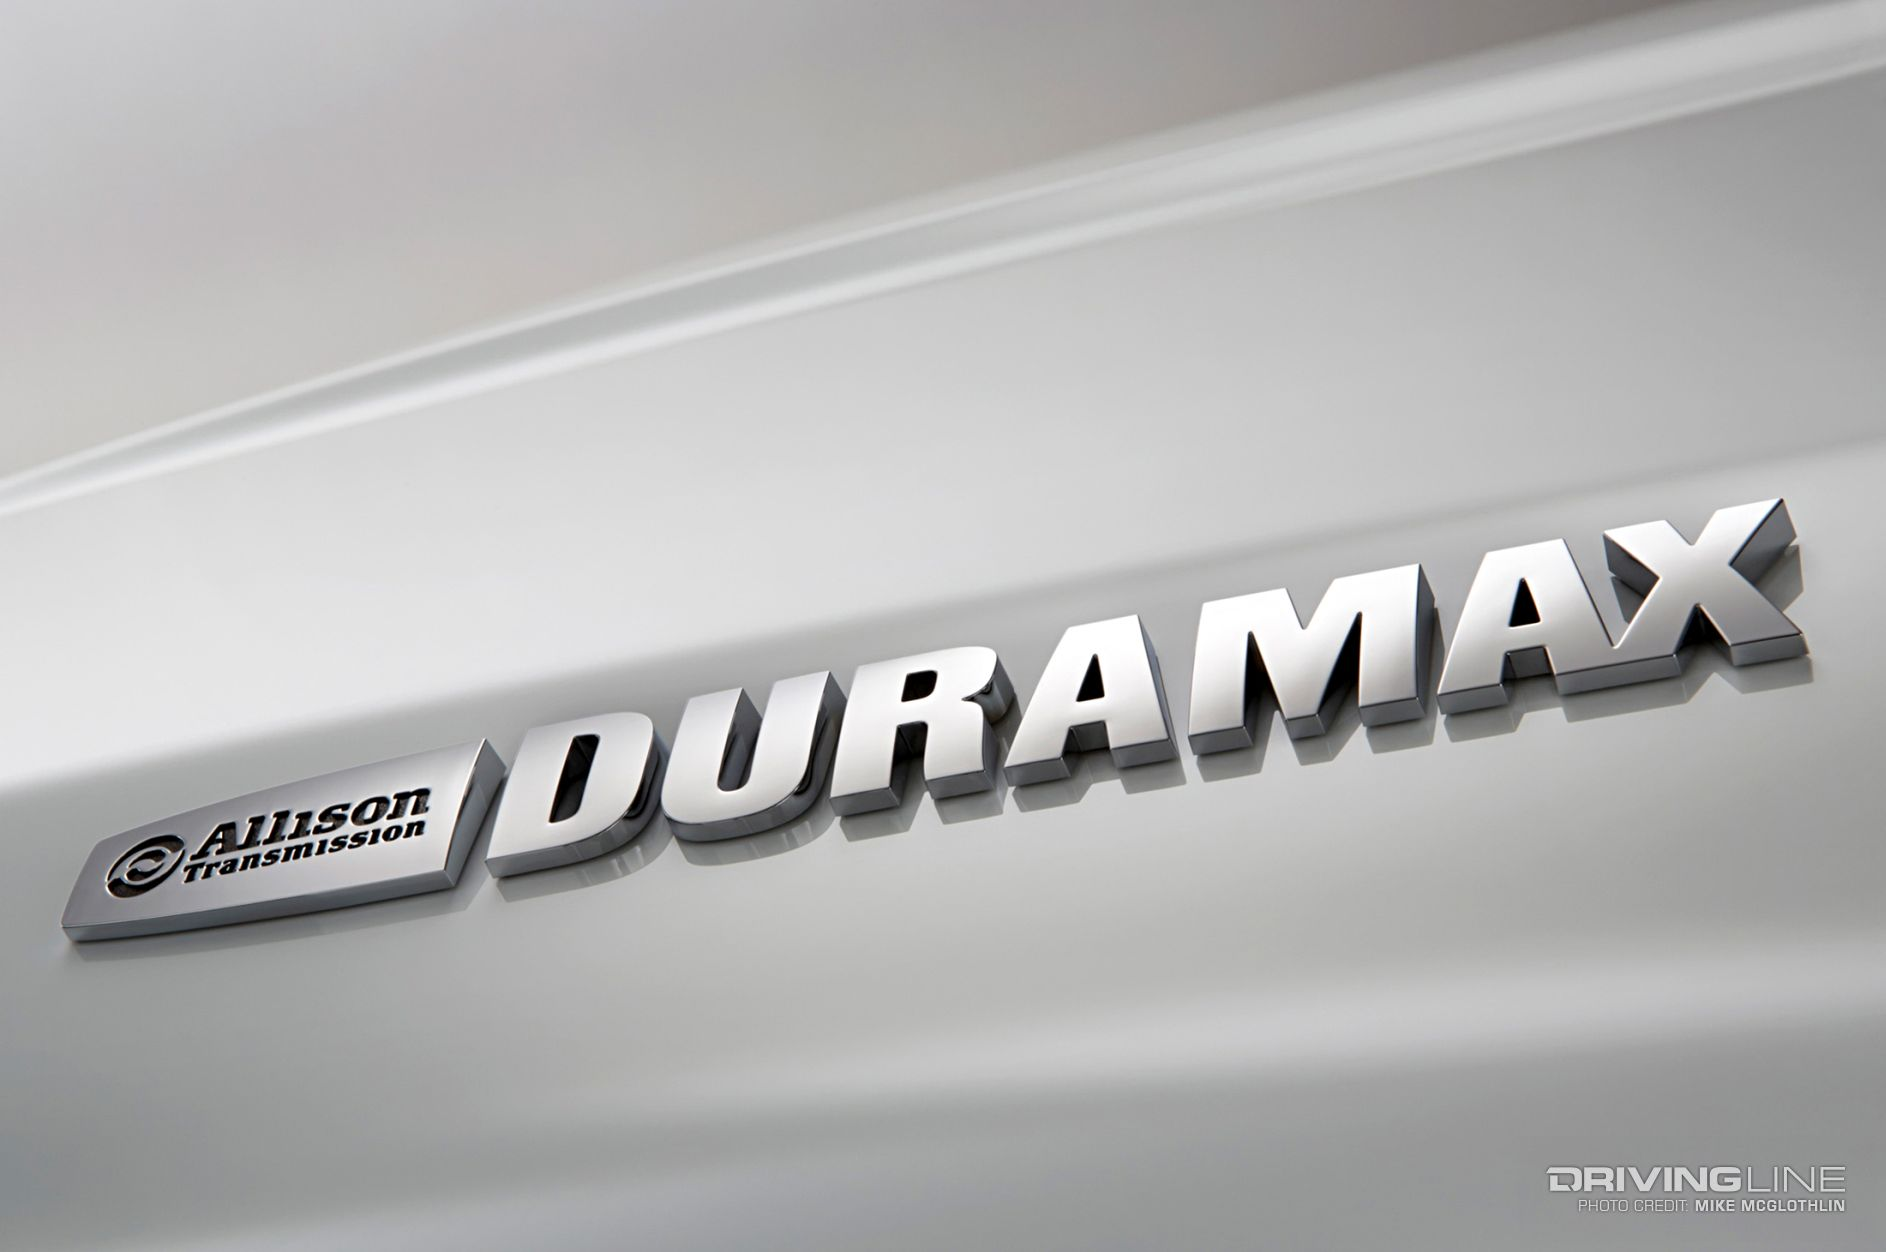 Duramax Buyer's Guide: How to Pick the Best GM Diesel | DrivingLine